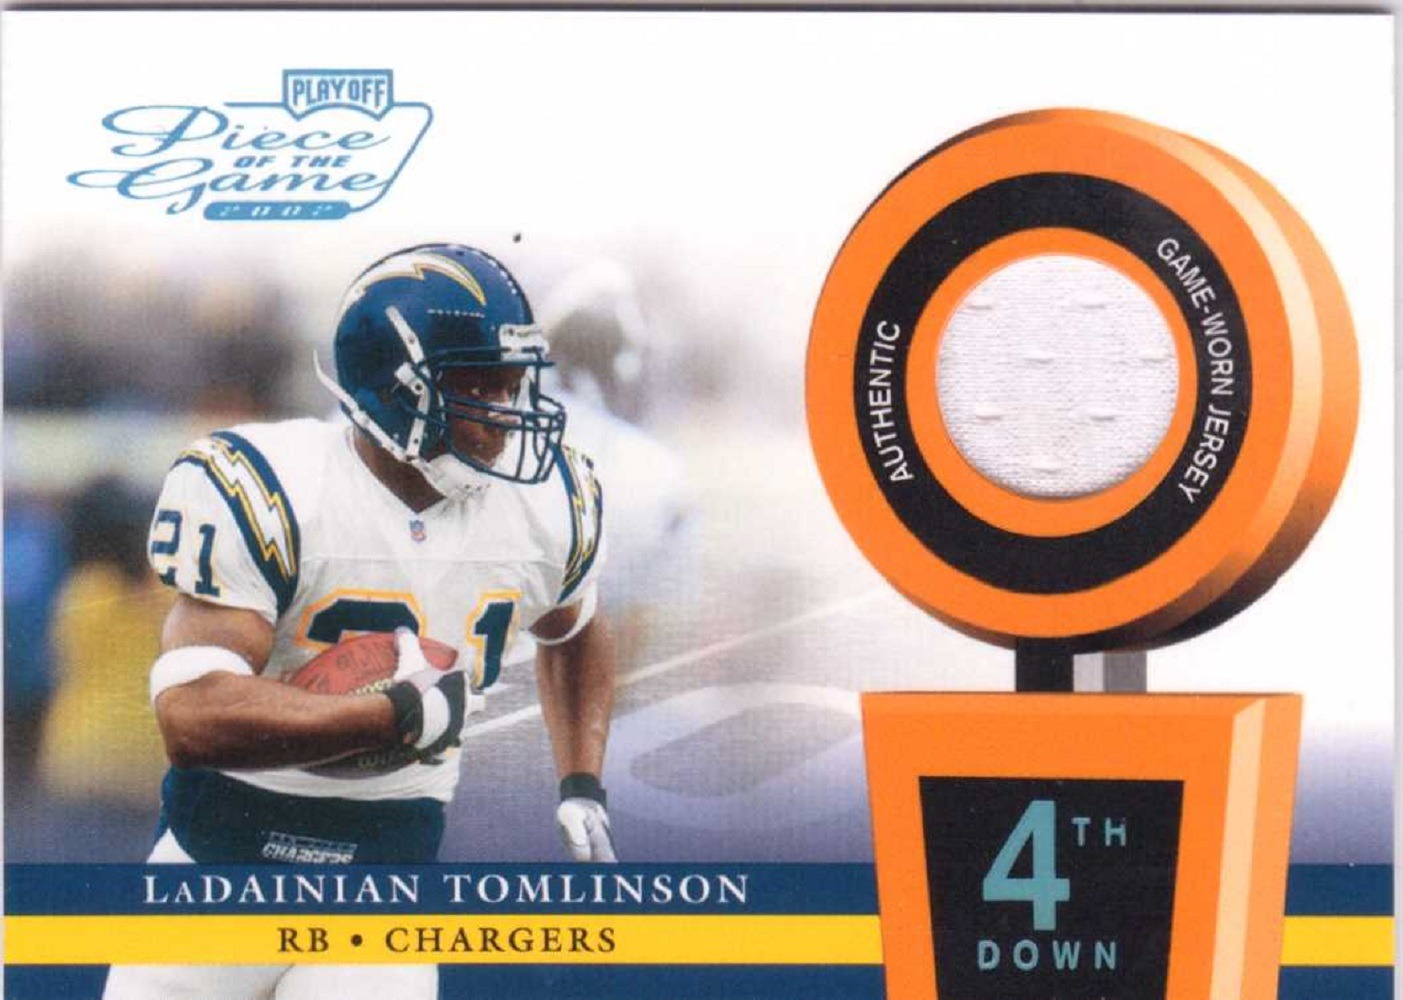 LaDainian Tomlinson 2002 Playoff Piece of the Game Materials 4th Down Patch /25